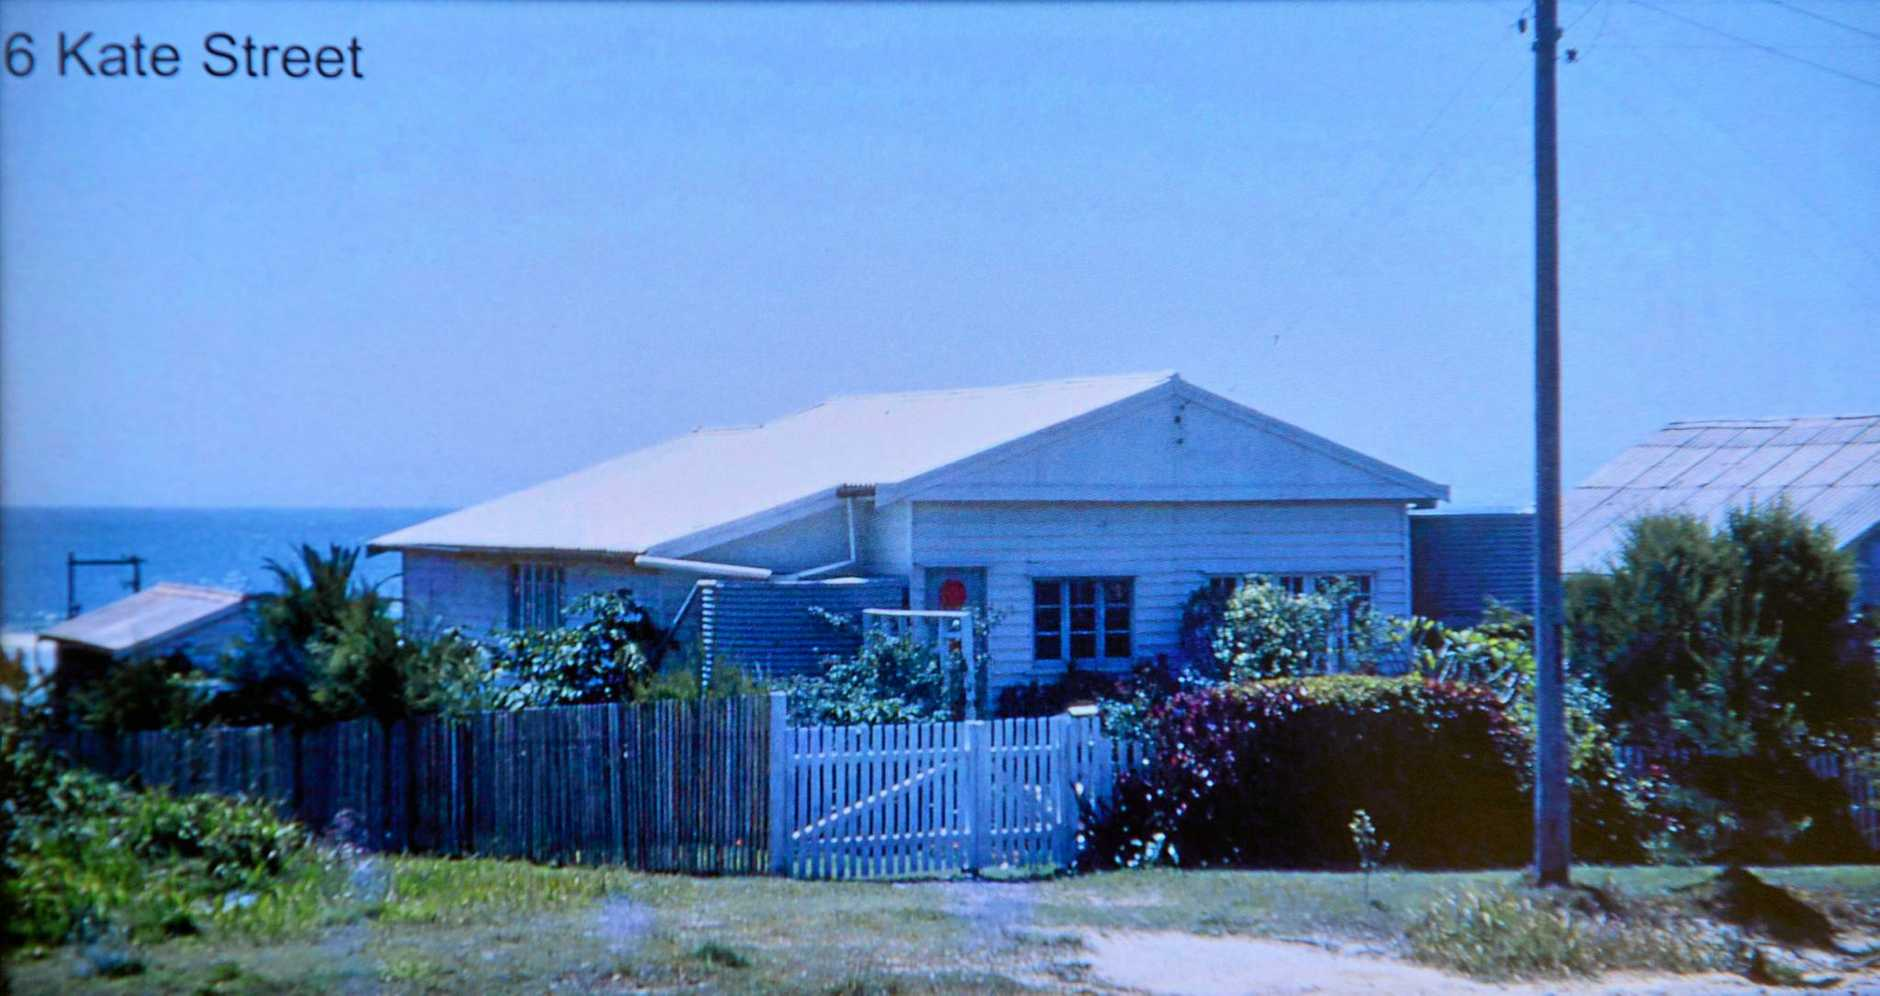 The Alexandra Headland house where Grace has lived since 1955.